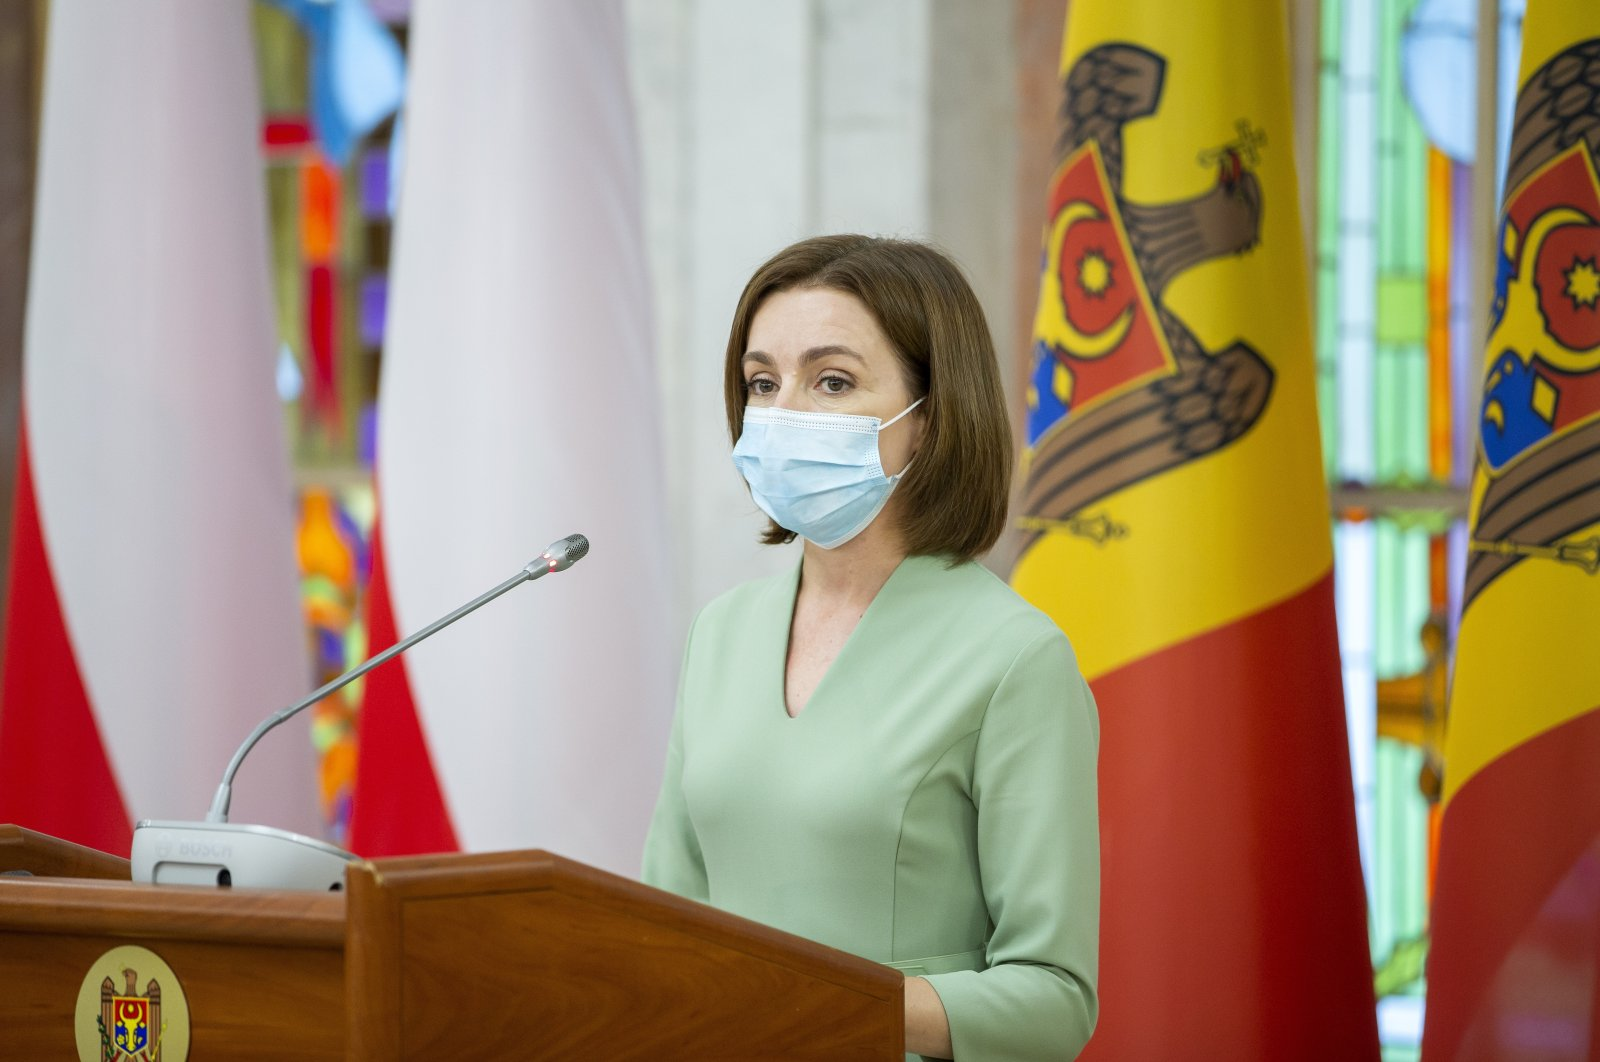 Moldovan President Maia Sandu during a joint press briefing with Polish President Duda (not pictured) at the Presidential Palace, in Chisinau, Moldova, Aug. 26, 2021. (EPA Photo)